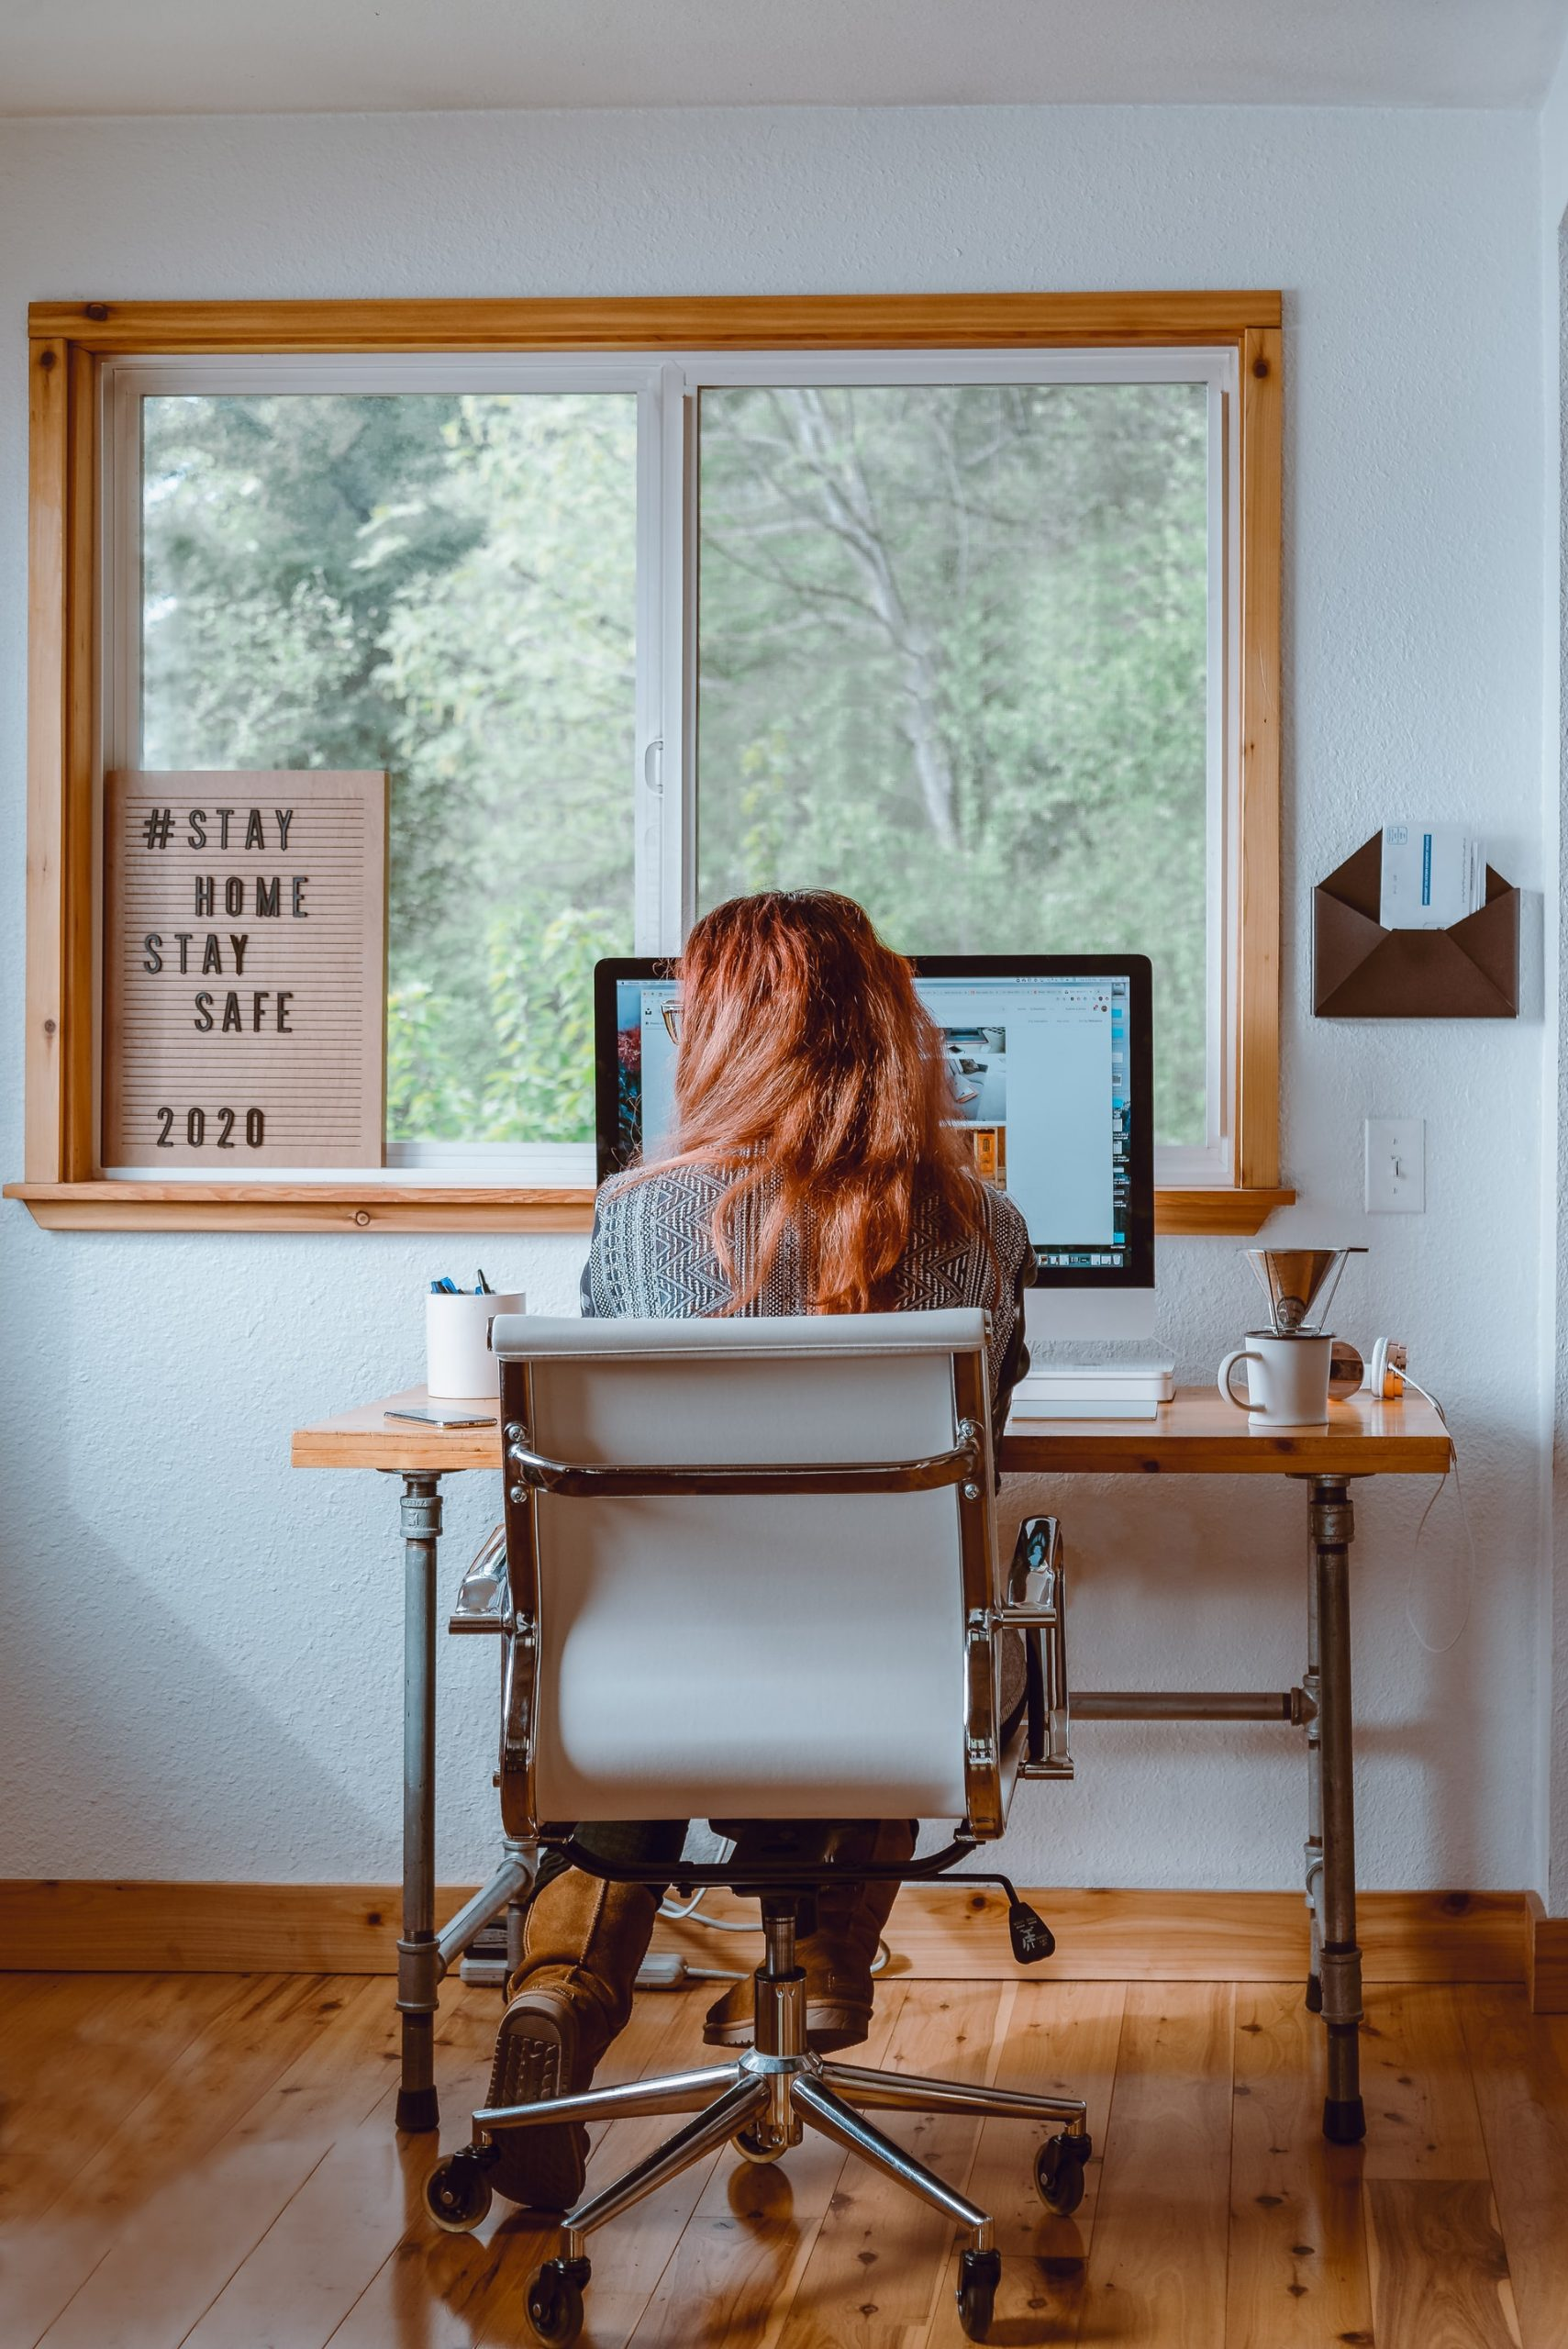 3 Ways to Build Your Career at Home